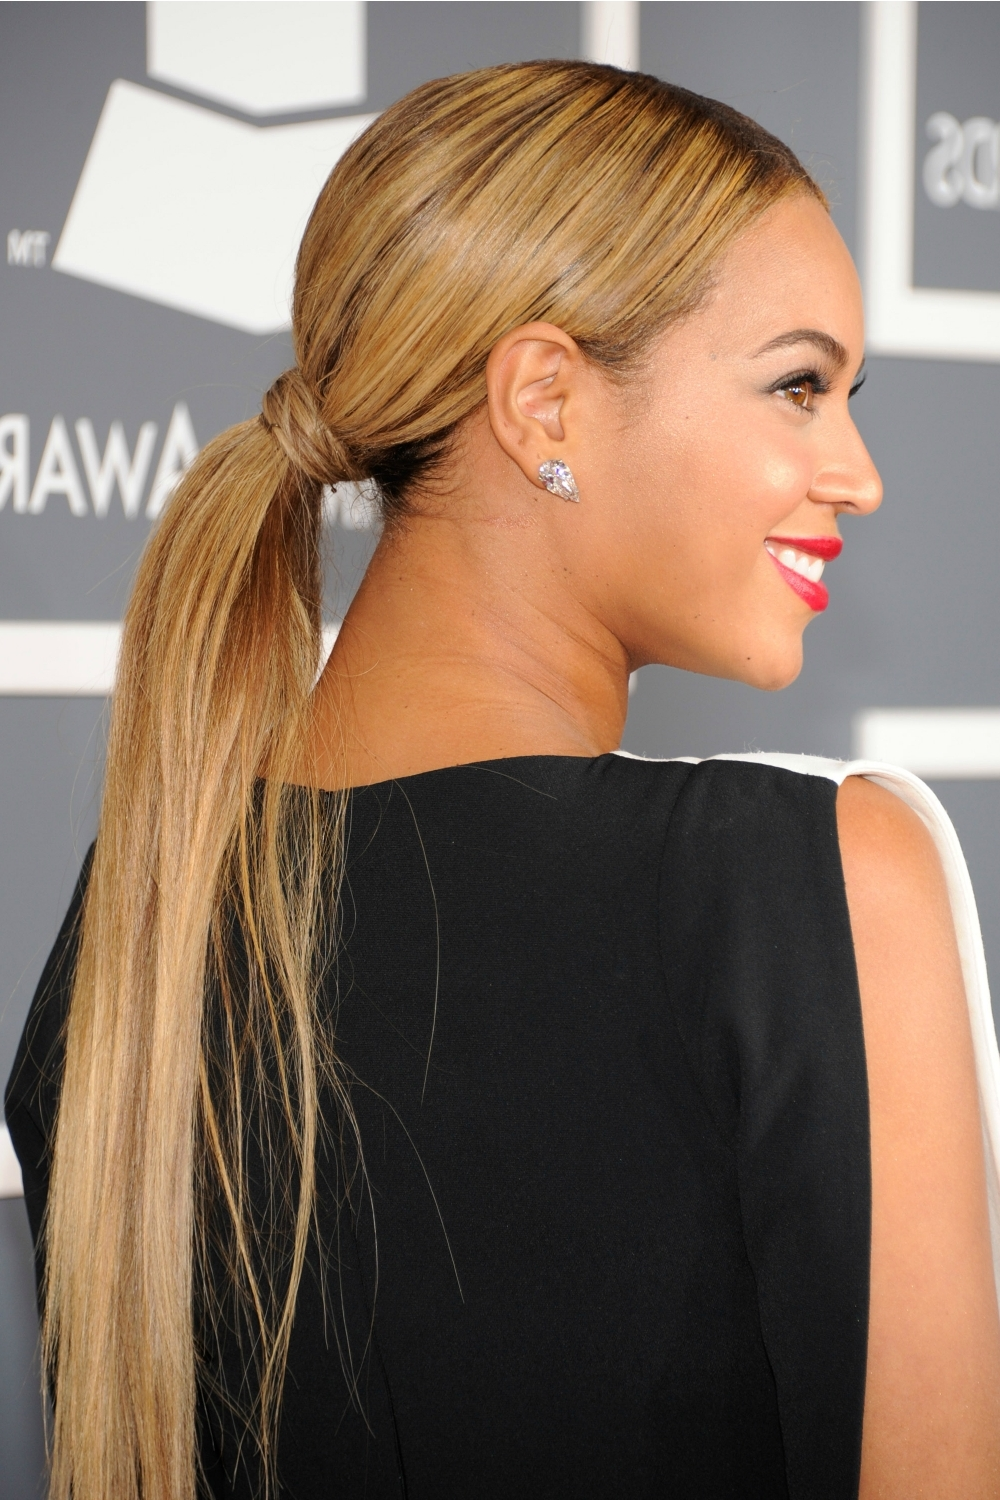 20 Ponytail Hairstyles – Easy Ponytail Ideas You Should This Summer With Trendy Super Sleek Ponytail Hairstyles (View 14 of 20)